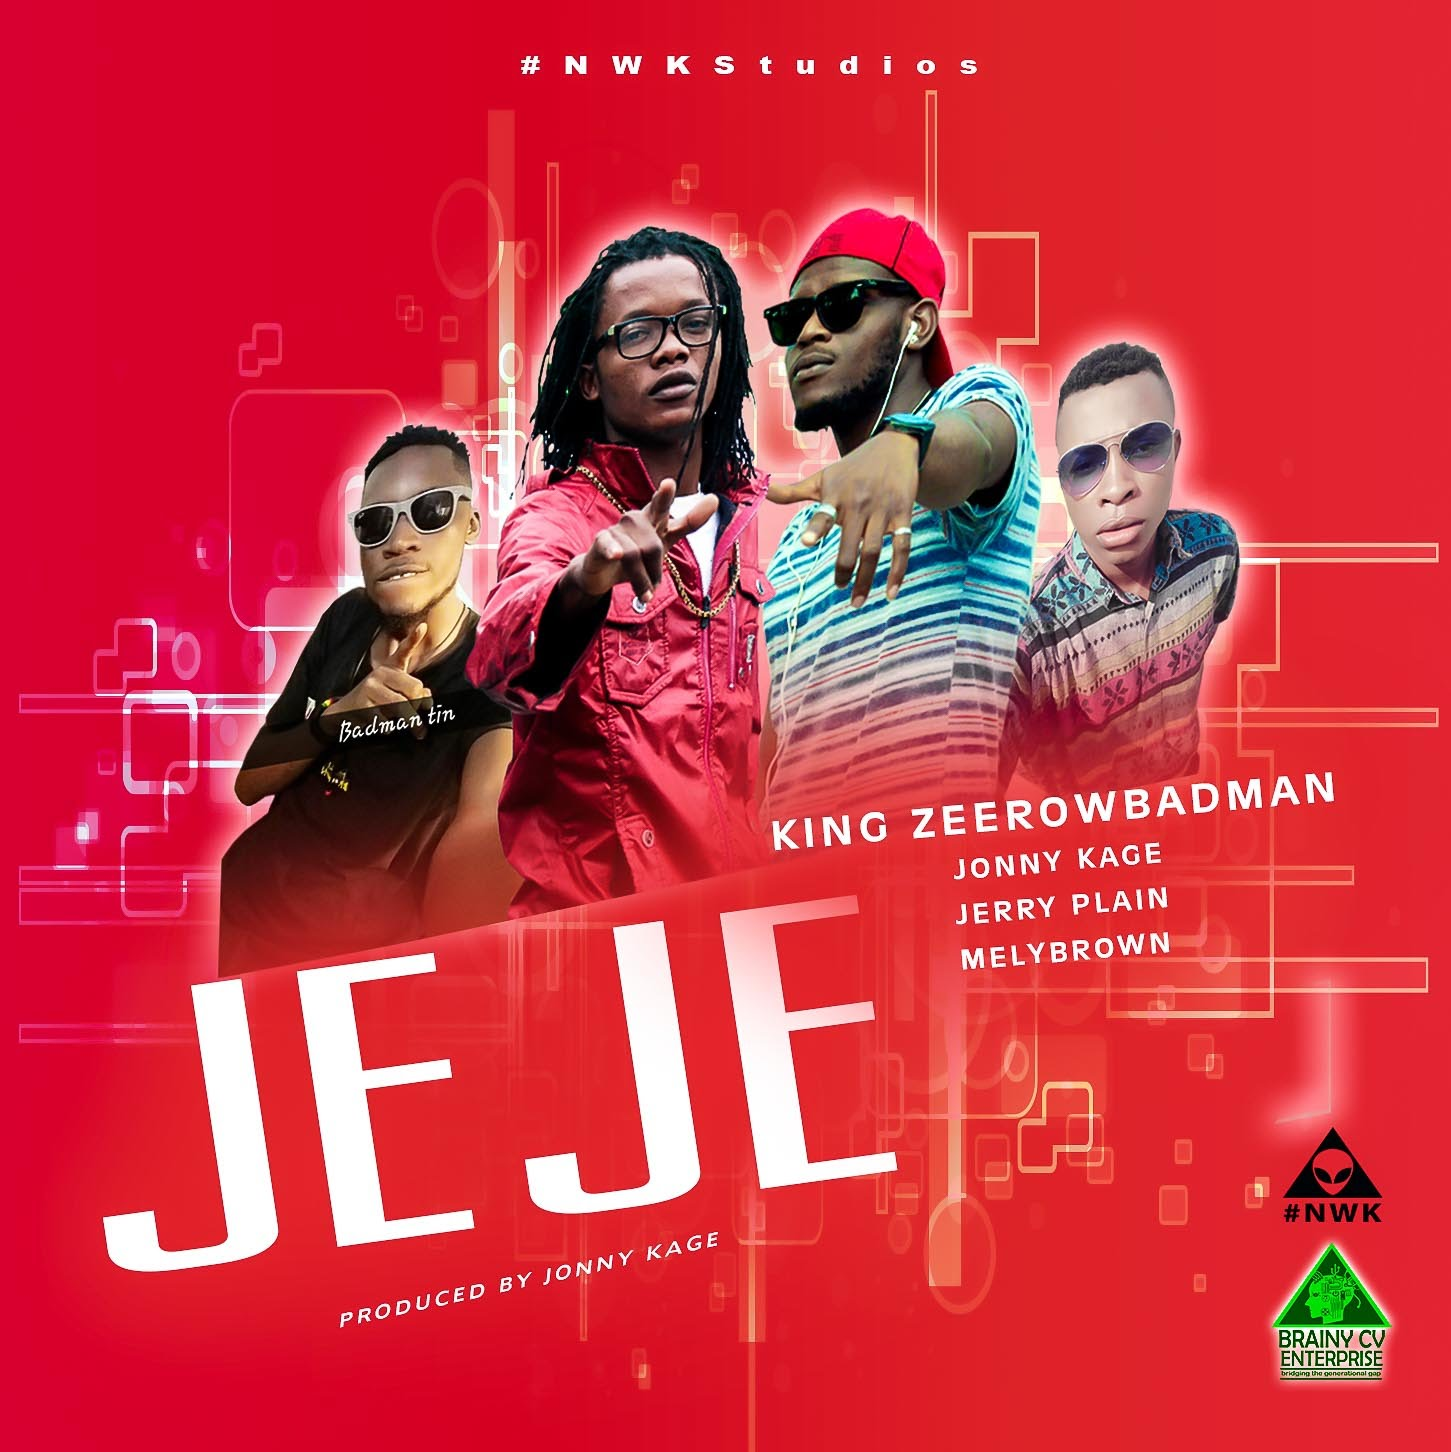 New Music: JeJe [Collabo] by King Zeerowbadman x Jonny Kage